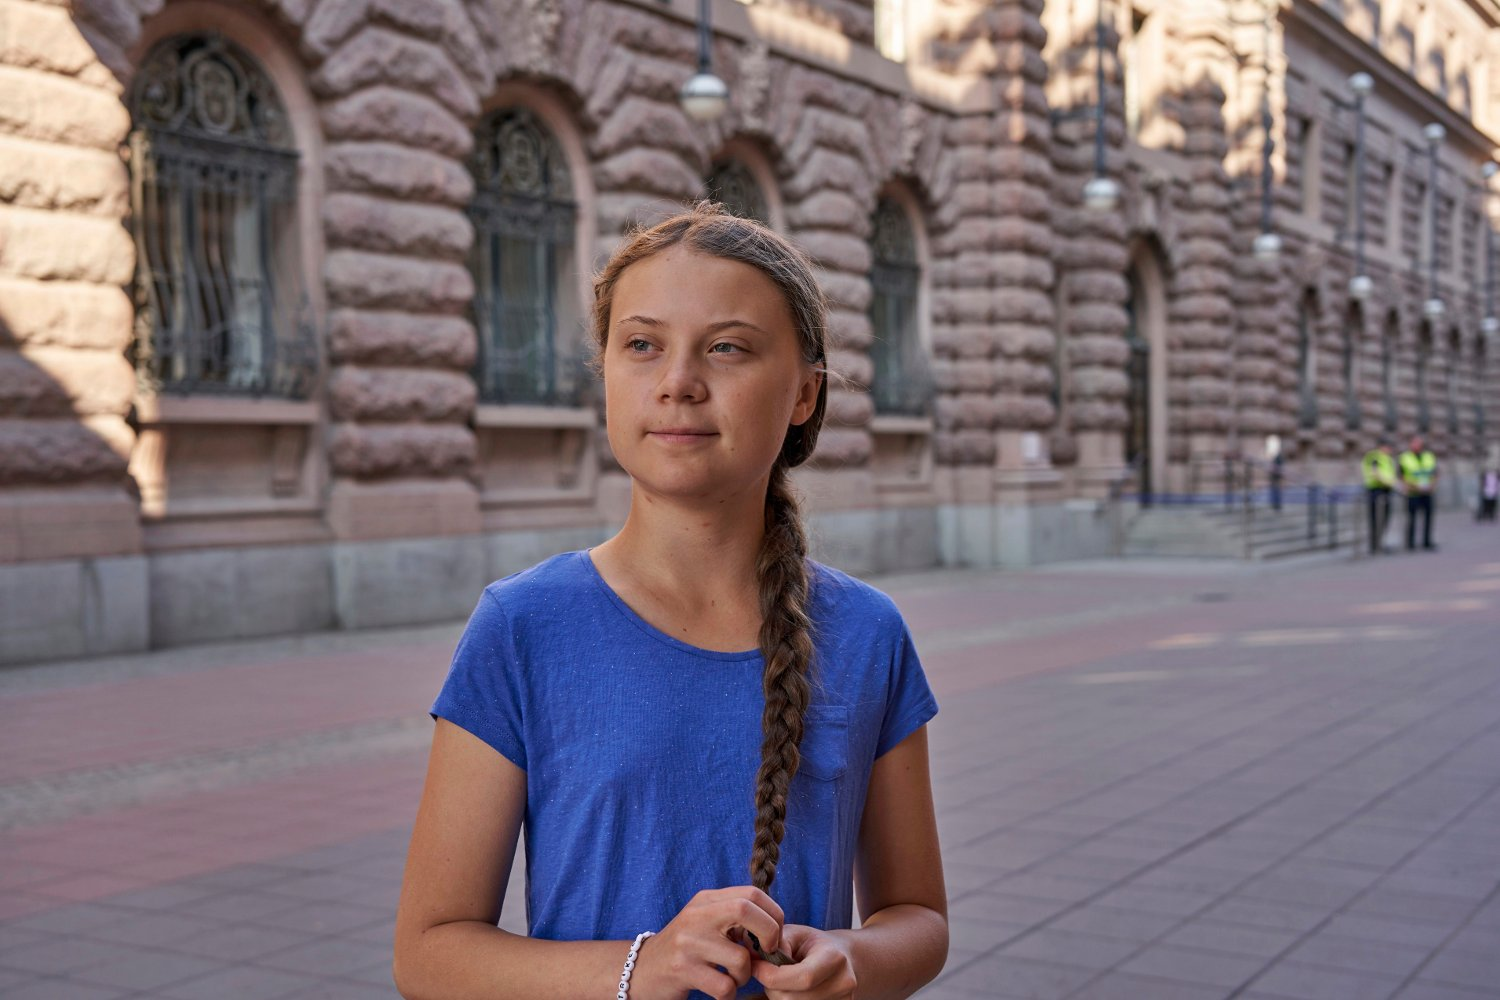 Greta Tunberg is the new leader in the global eco-movement. Why is everyone talking about her?